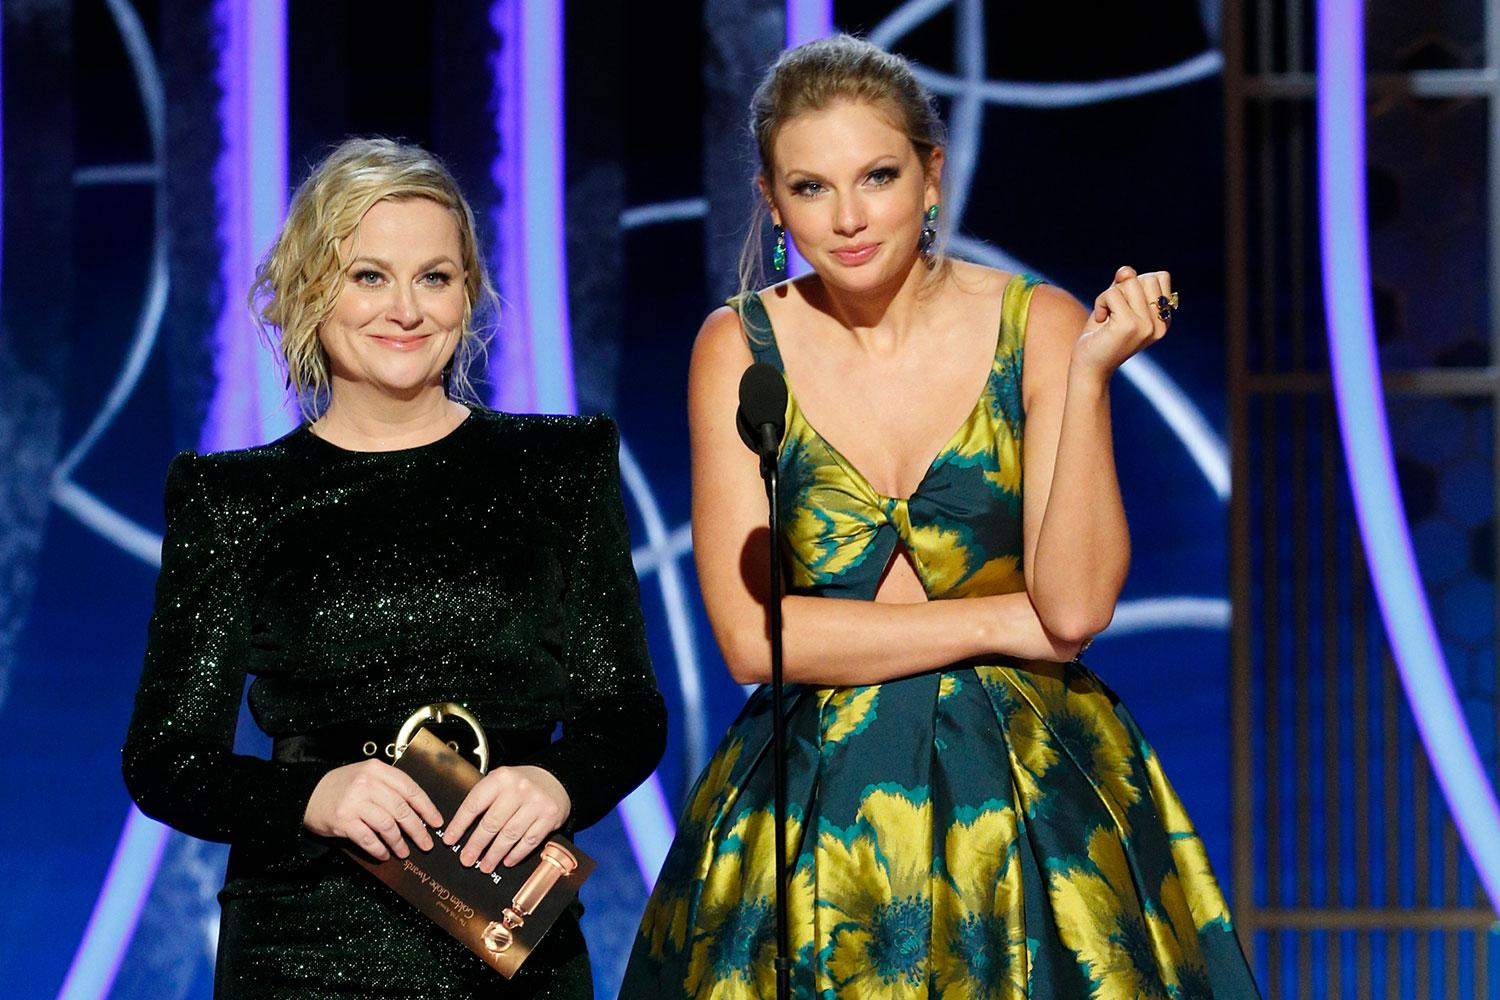 Taylor Swift And Amy Poehler Present At The Golden Globes Together Years After Explosive Feud!